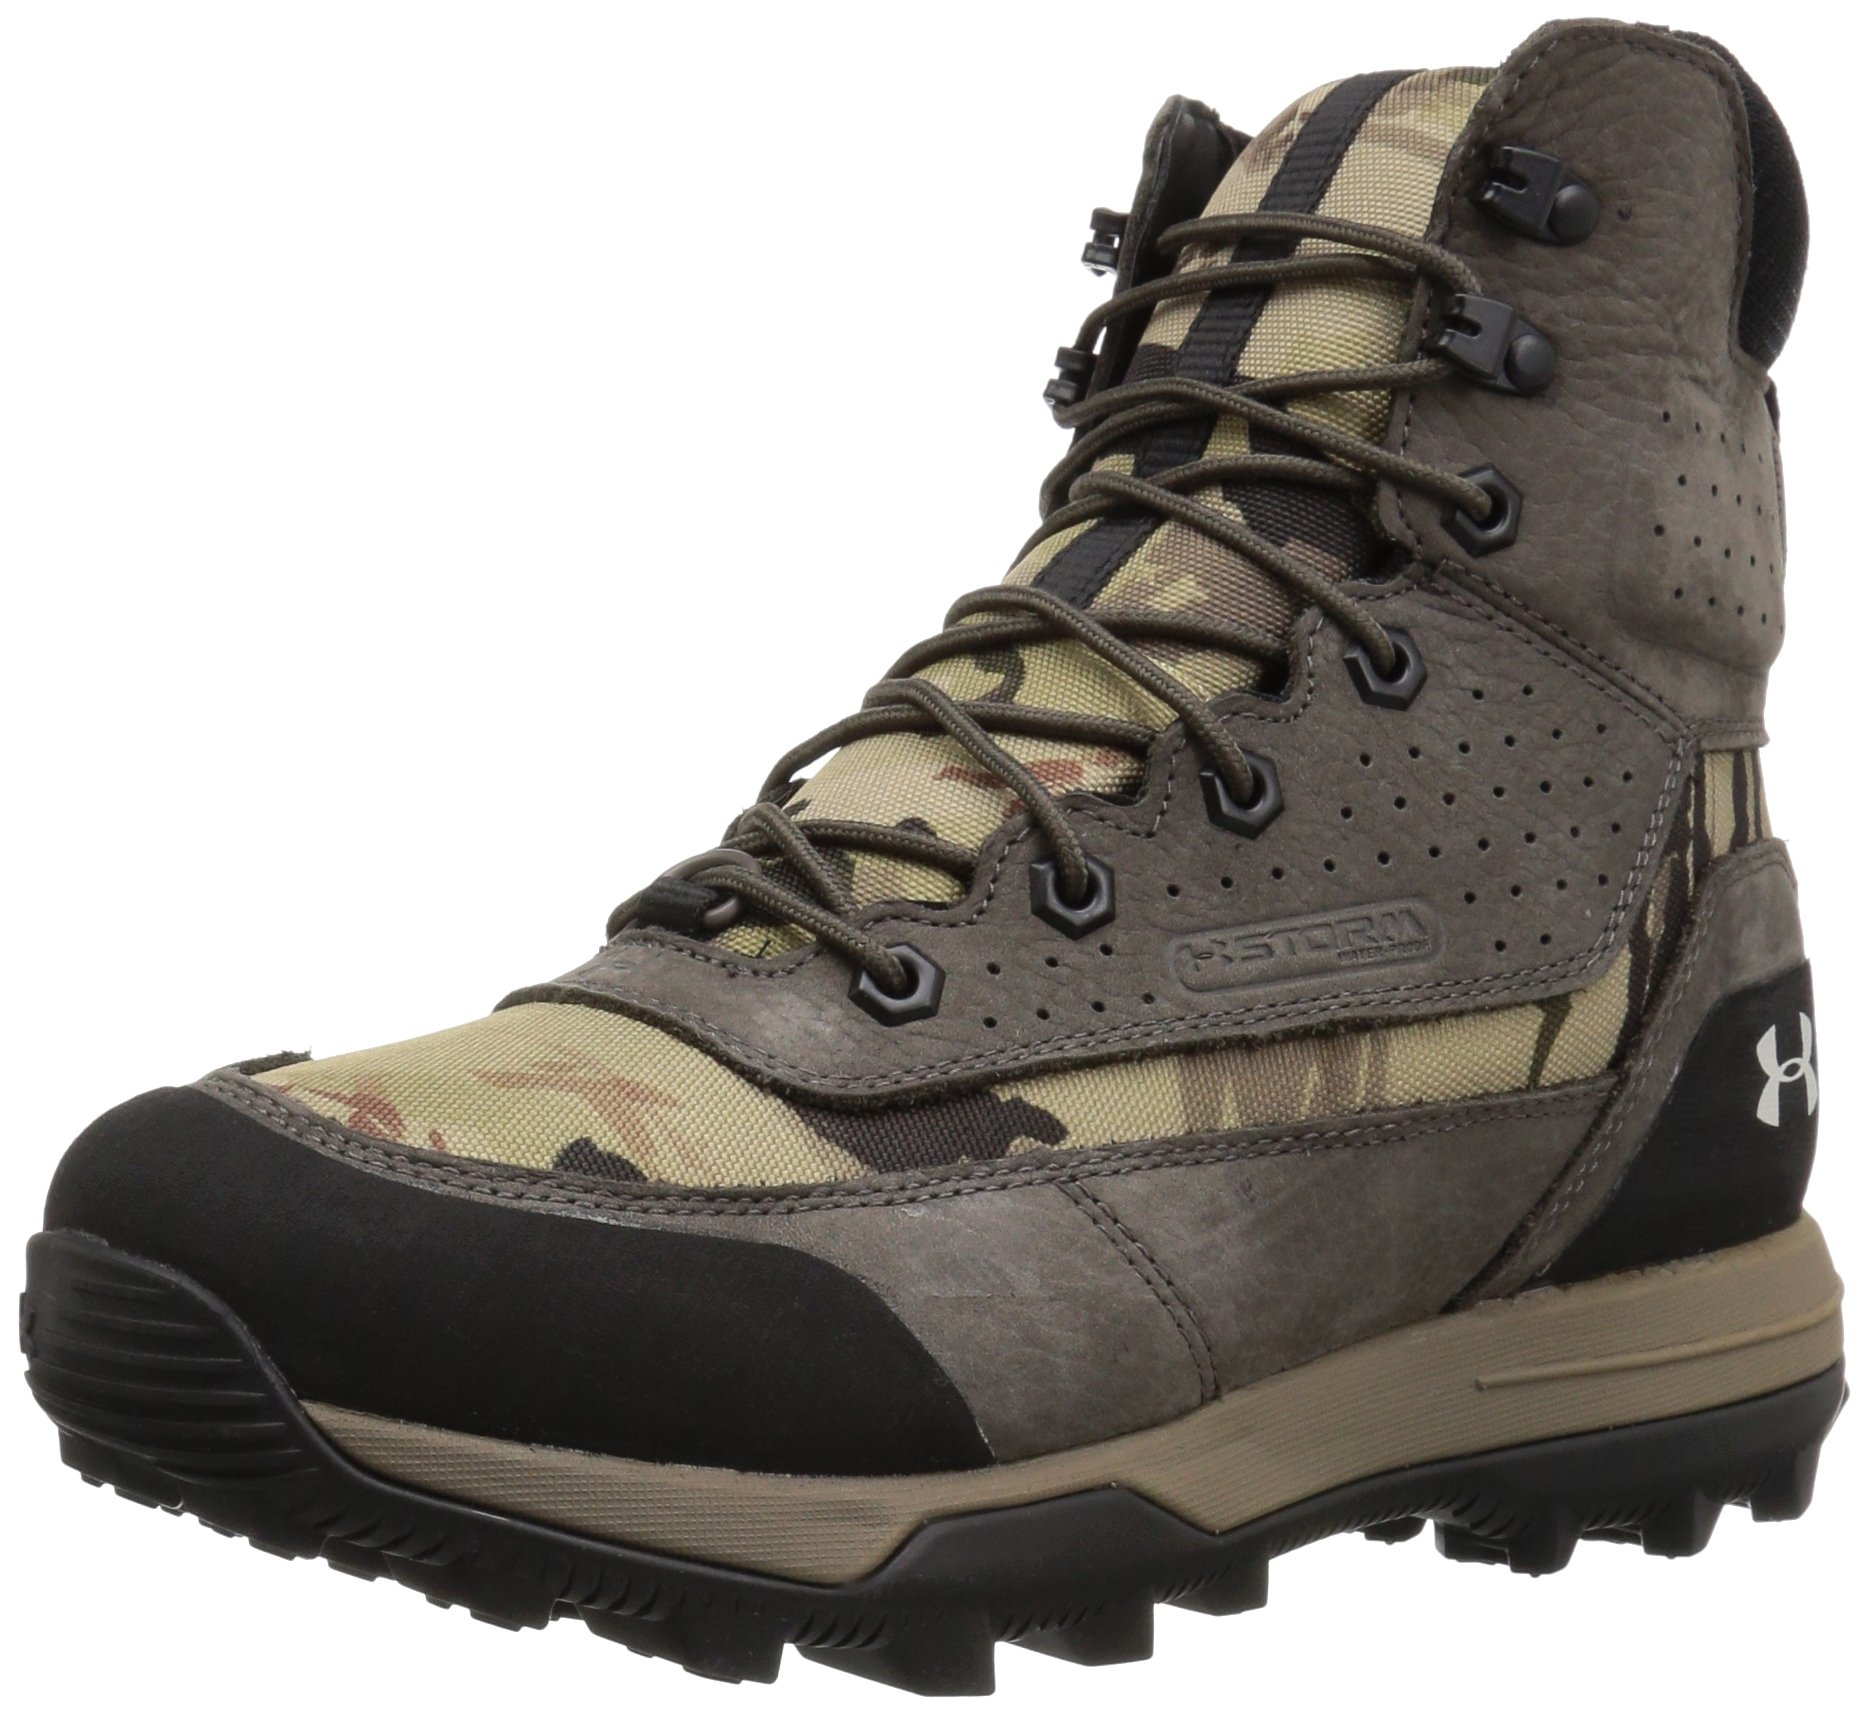 Under Armour Women's Speed Freek Bozeman 2.0-G Ankle Boot, Ridge Reaper Camo Ba (900)/Maverick Brown, 8.5 by Under Armour